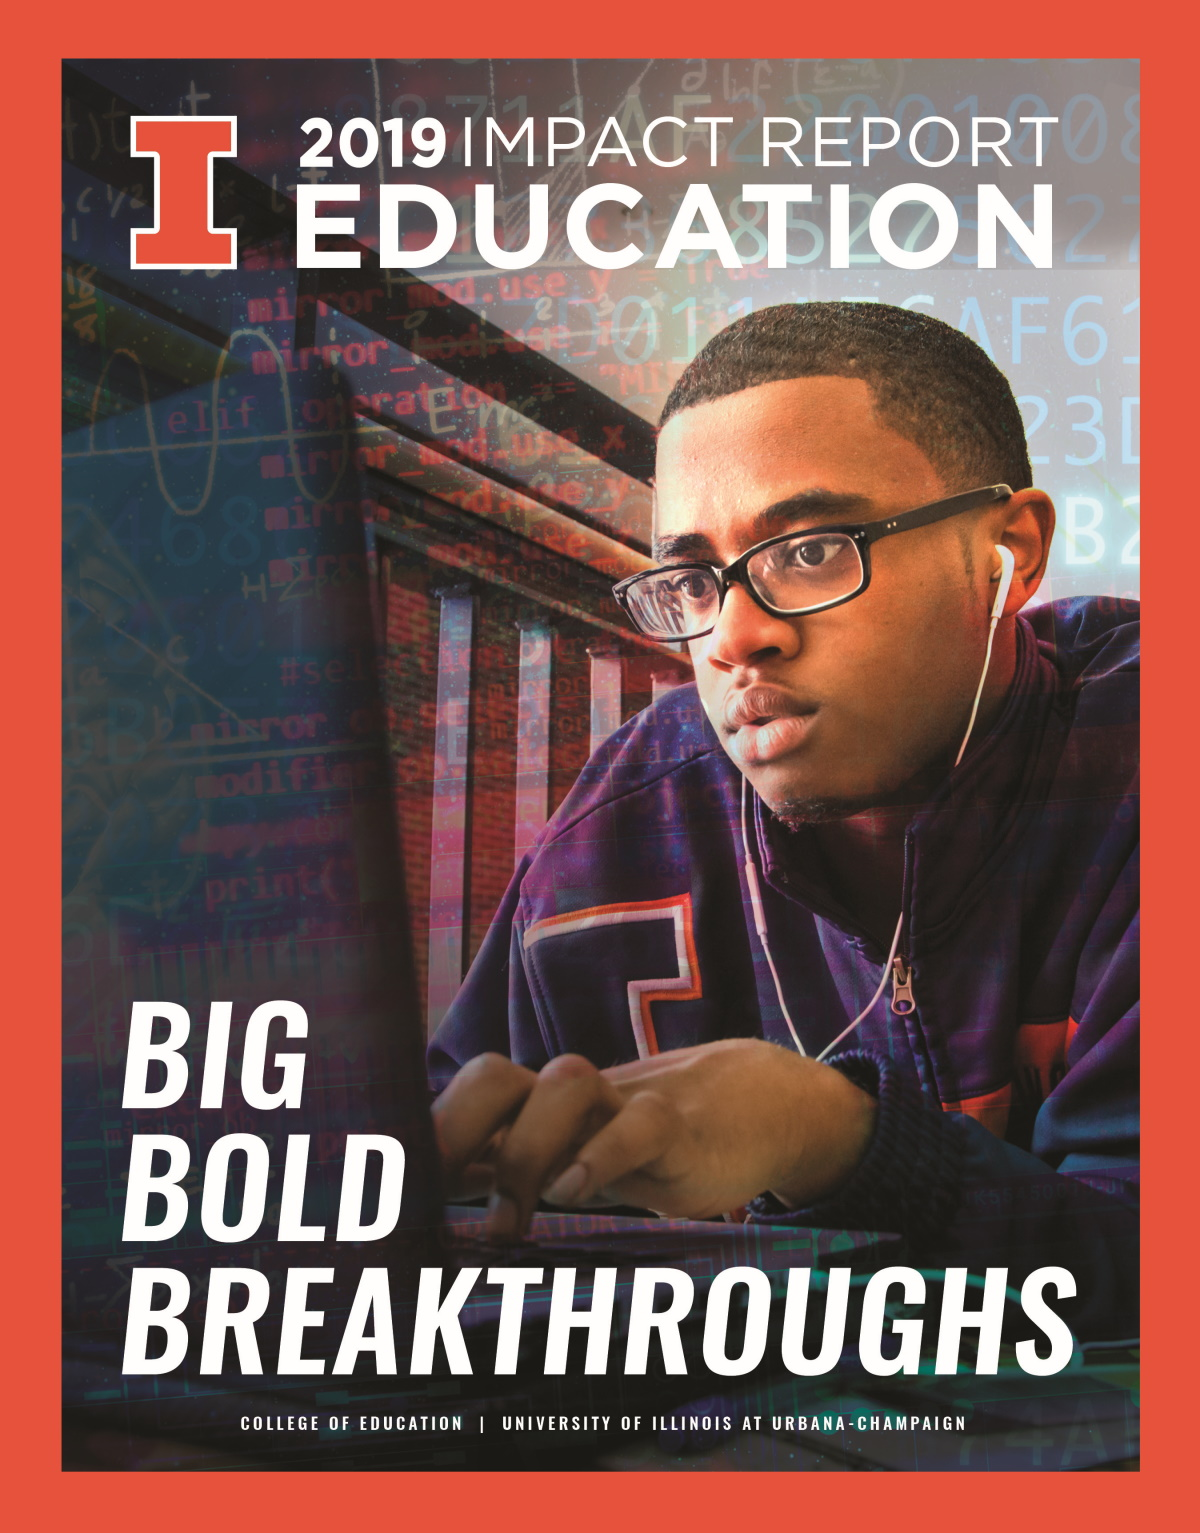 2019 Impact Report Education: Big Bold Breakthroughs